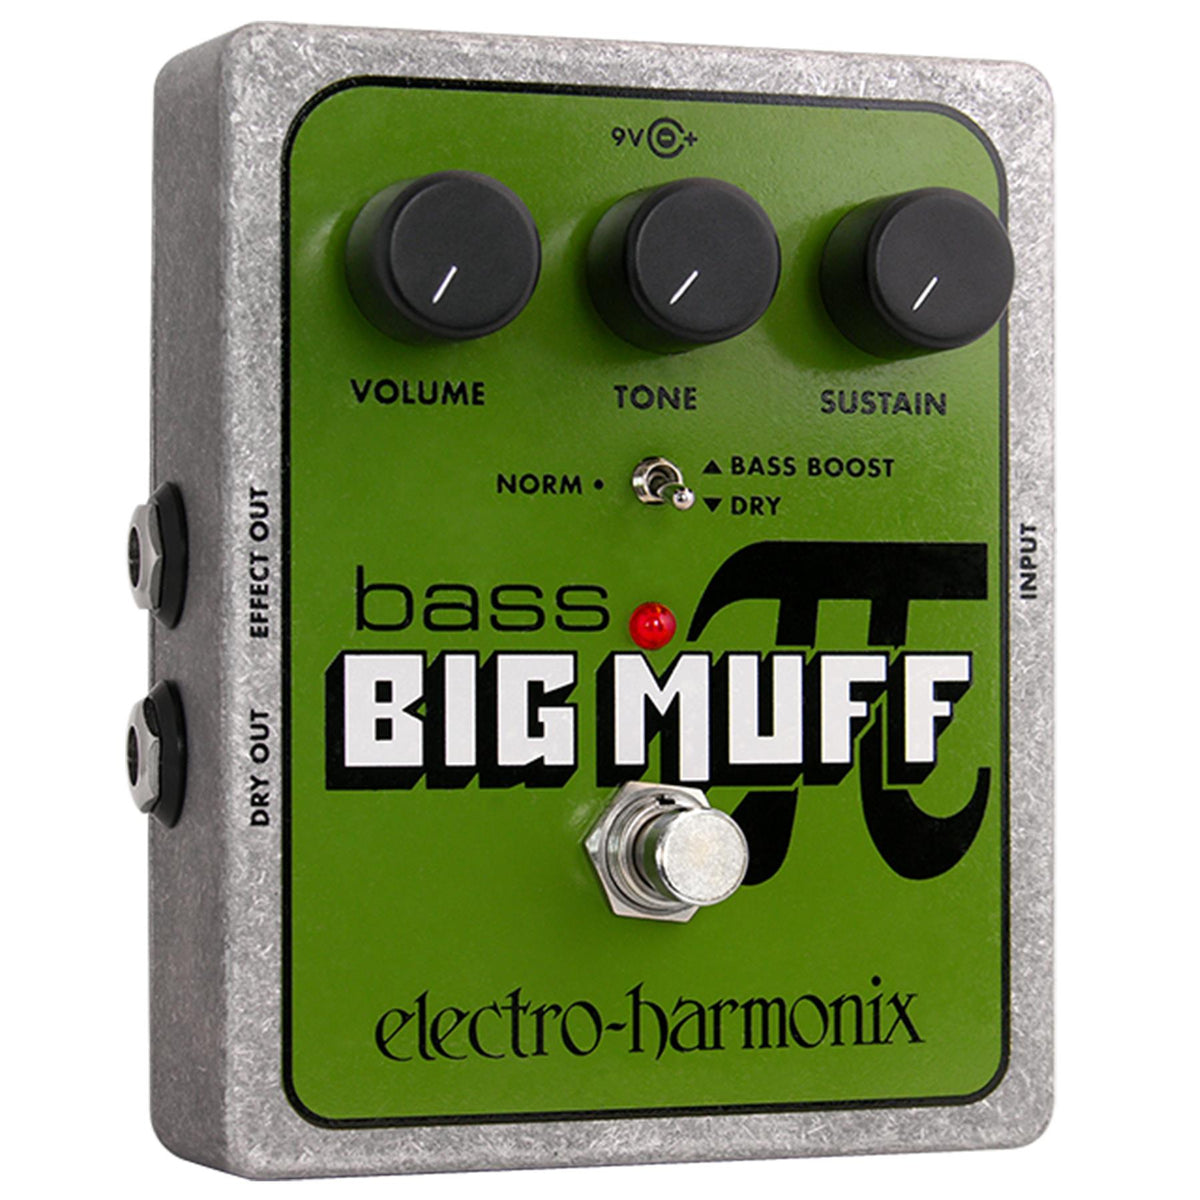 Electro-Harmonix Bass Big Muff Pi Distortion/Sustainer Guitar Effects Pedal with Battery